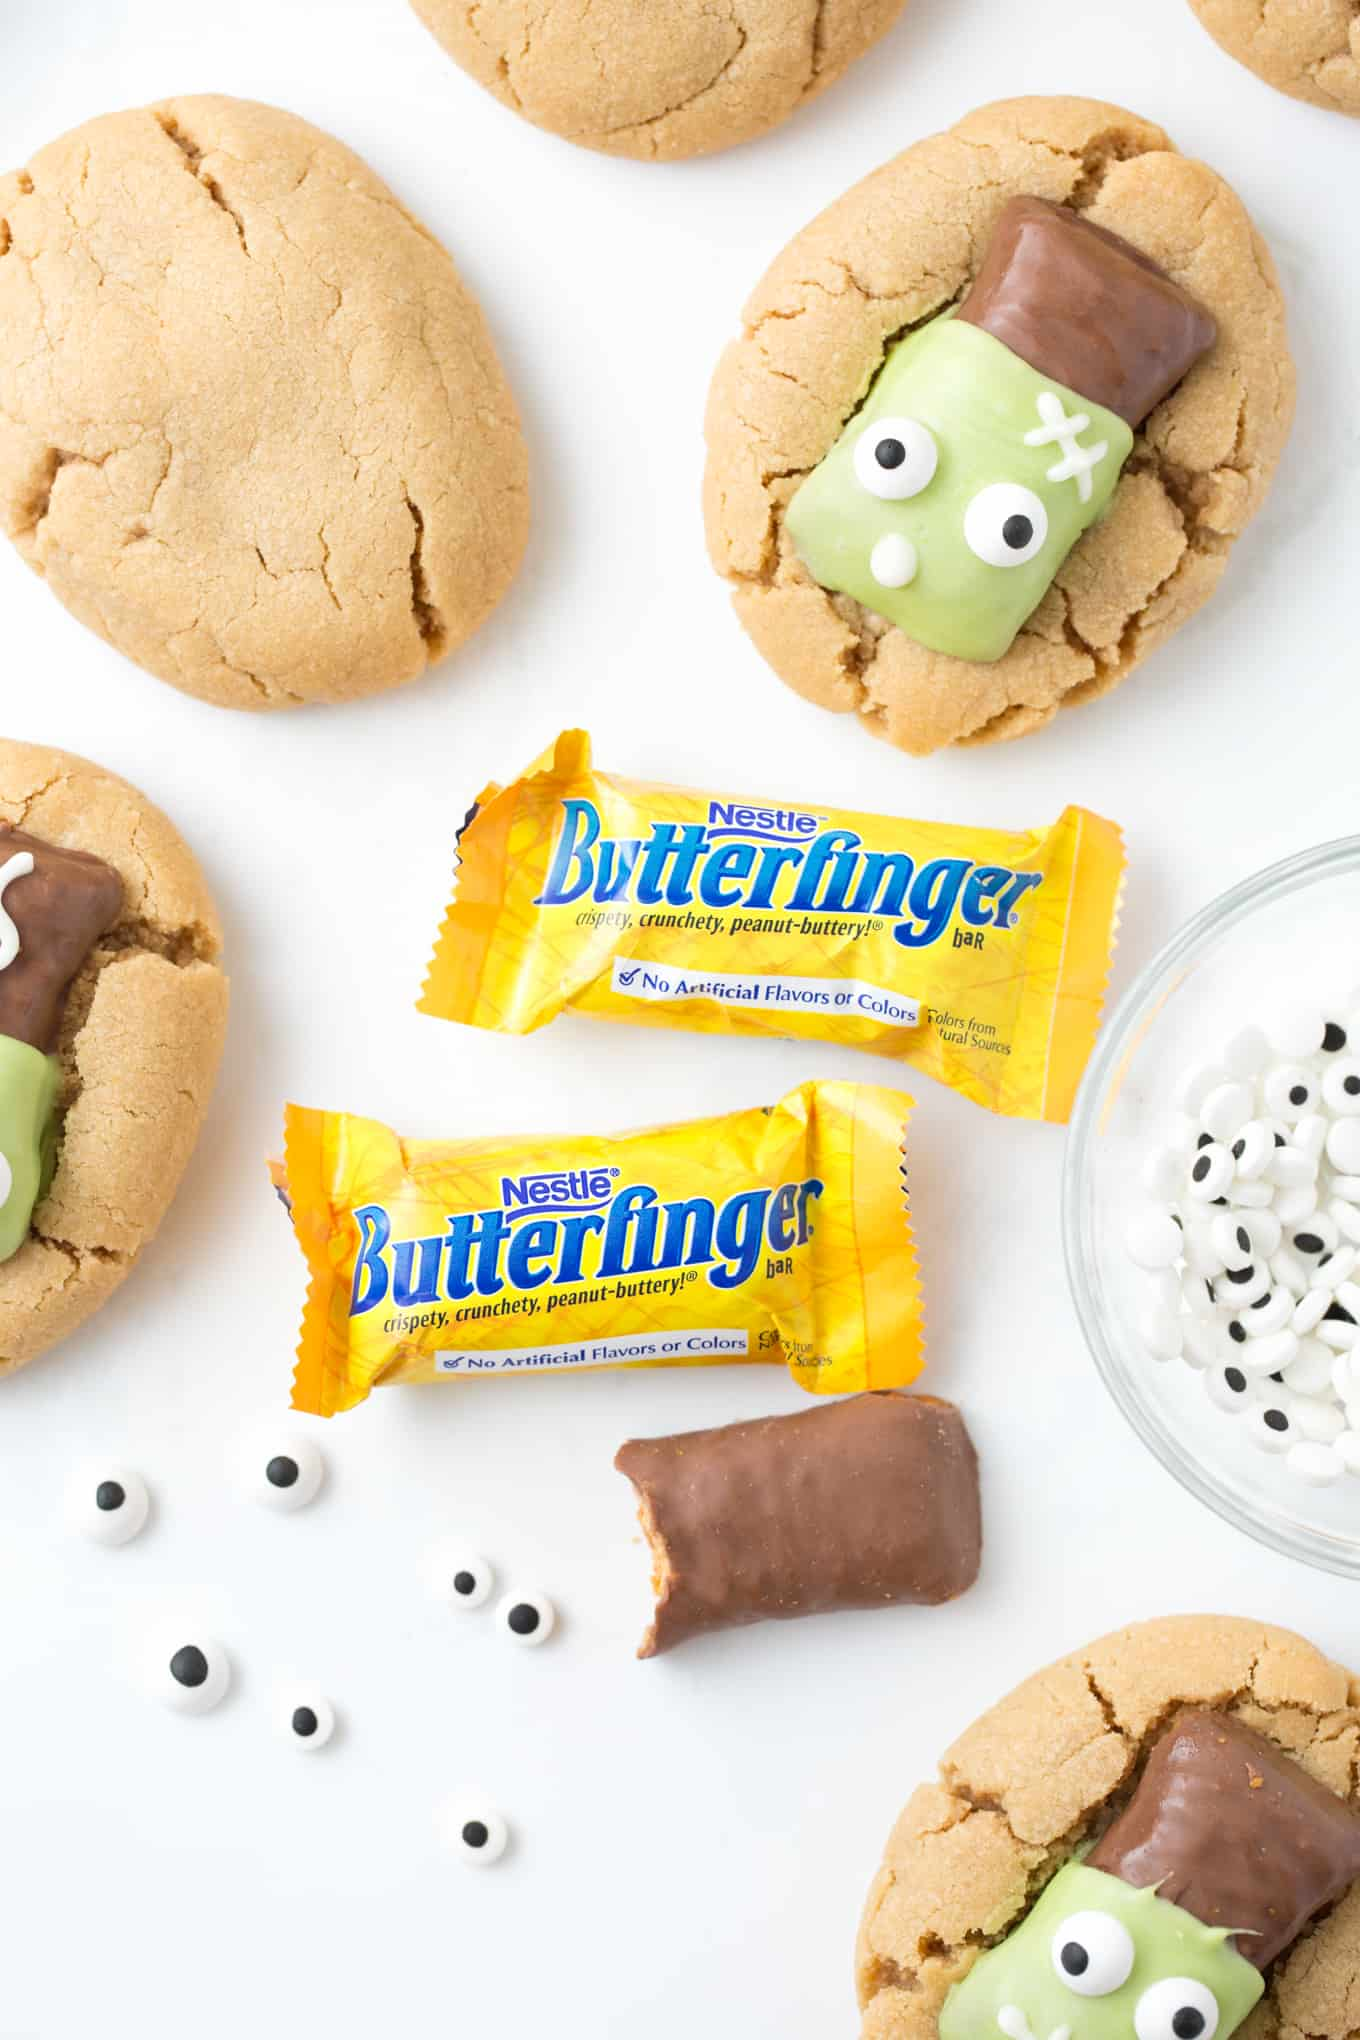 Peanut butter cookies topped with Butterfinger fun size candy bars that have been decorated to look like Frankenstein.